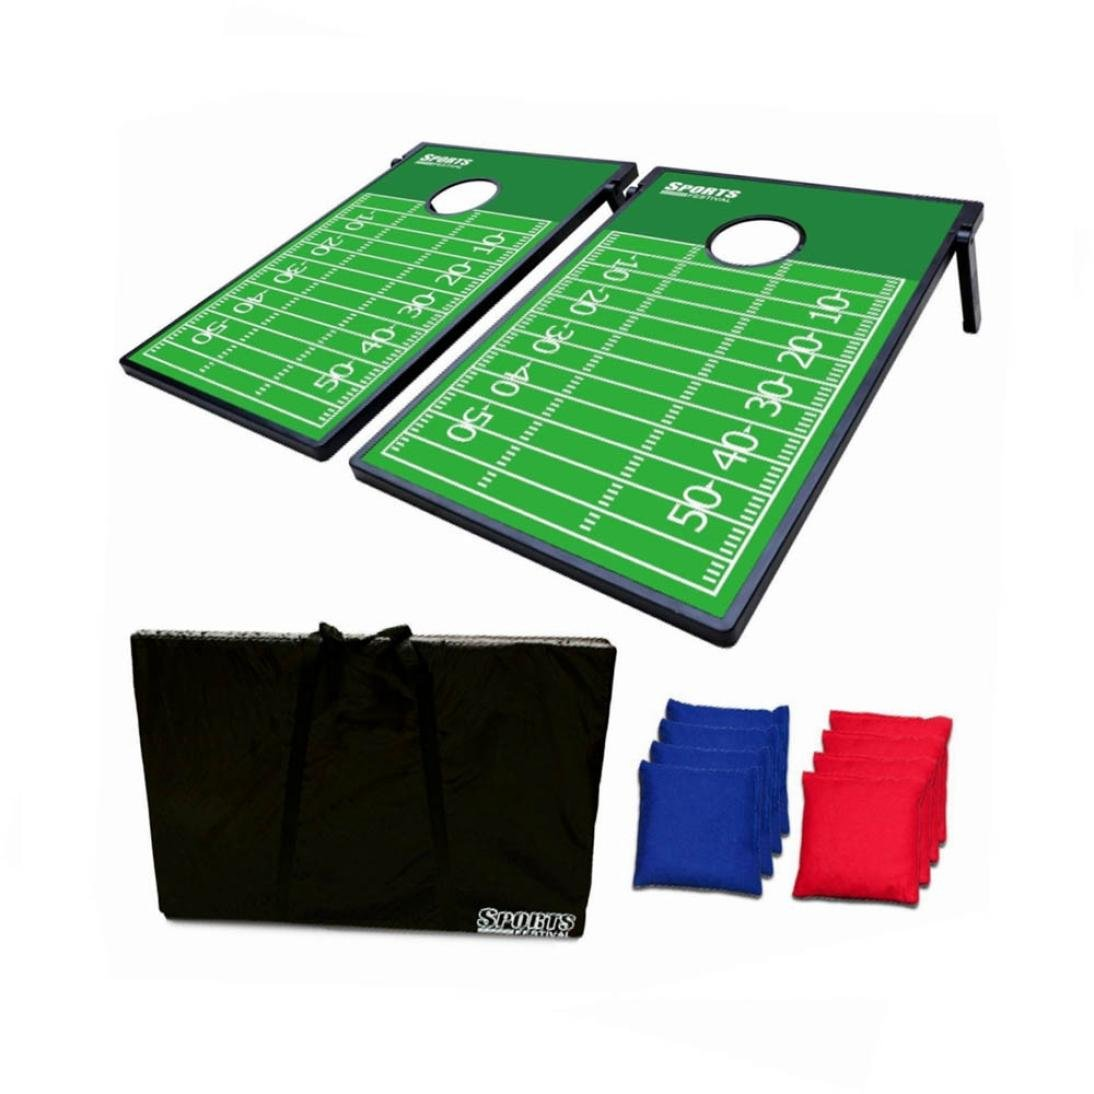 Hohaski Cornhole Game Set with 8 Bean Bags and Travel Carrying Case- Football Field Tic Tac Toe 2 Games In 1